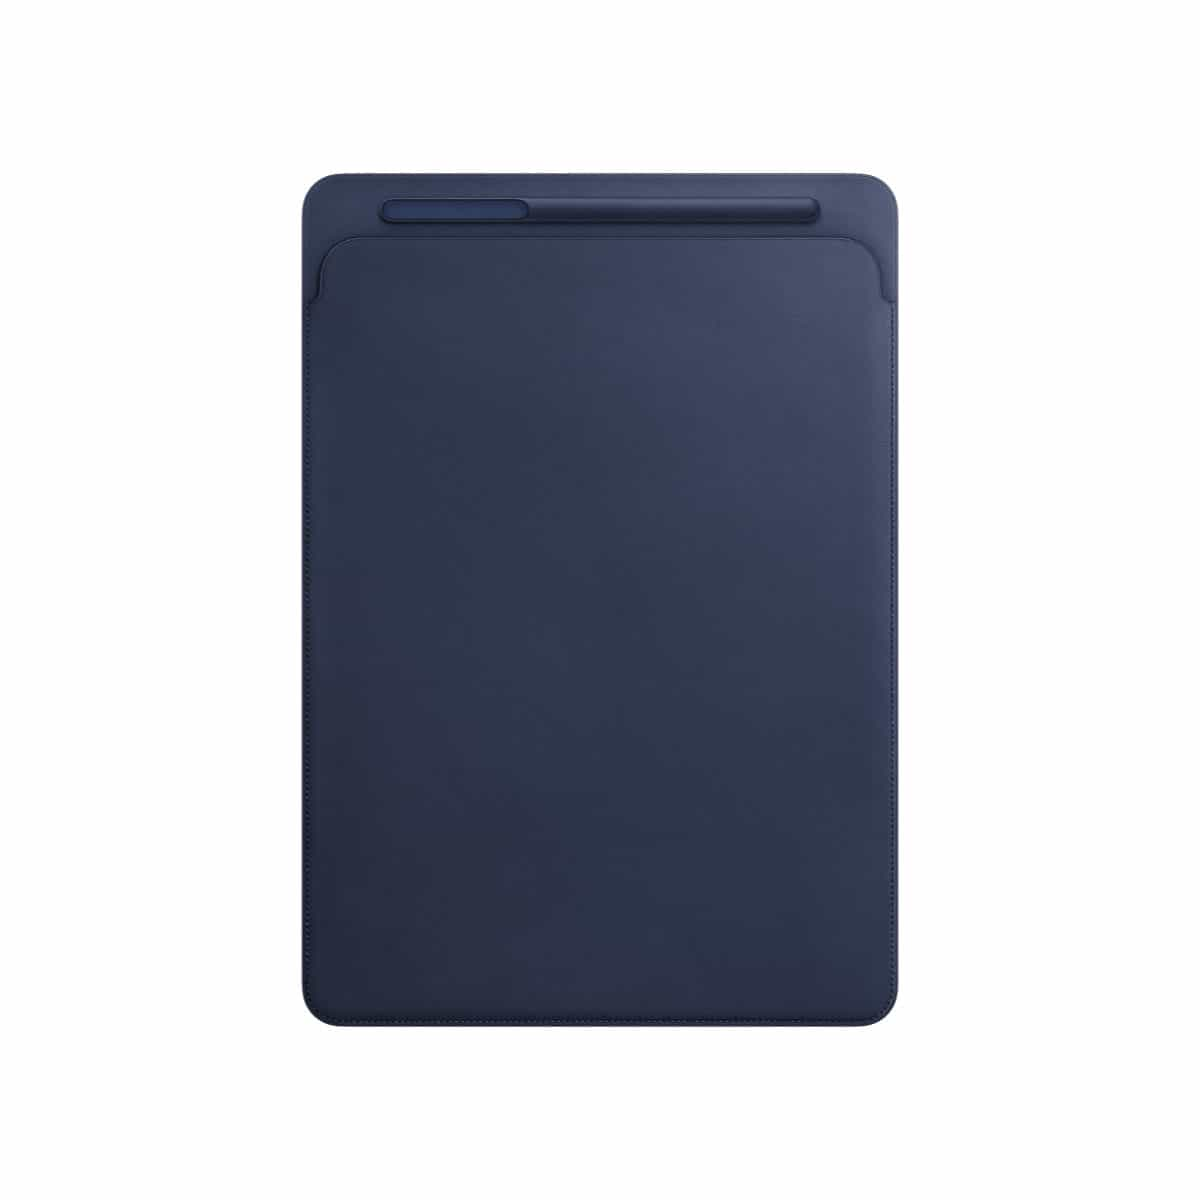 iPadPro13-2017-Sleeve-MidnightBlue-SCREEN